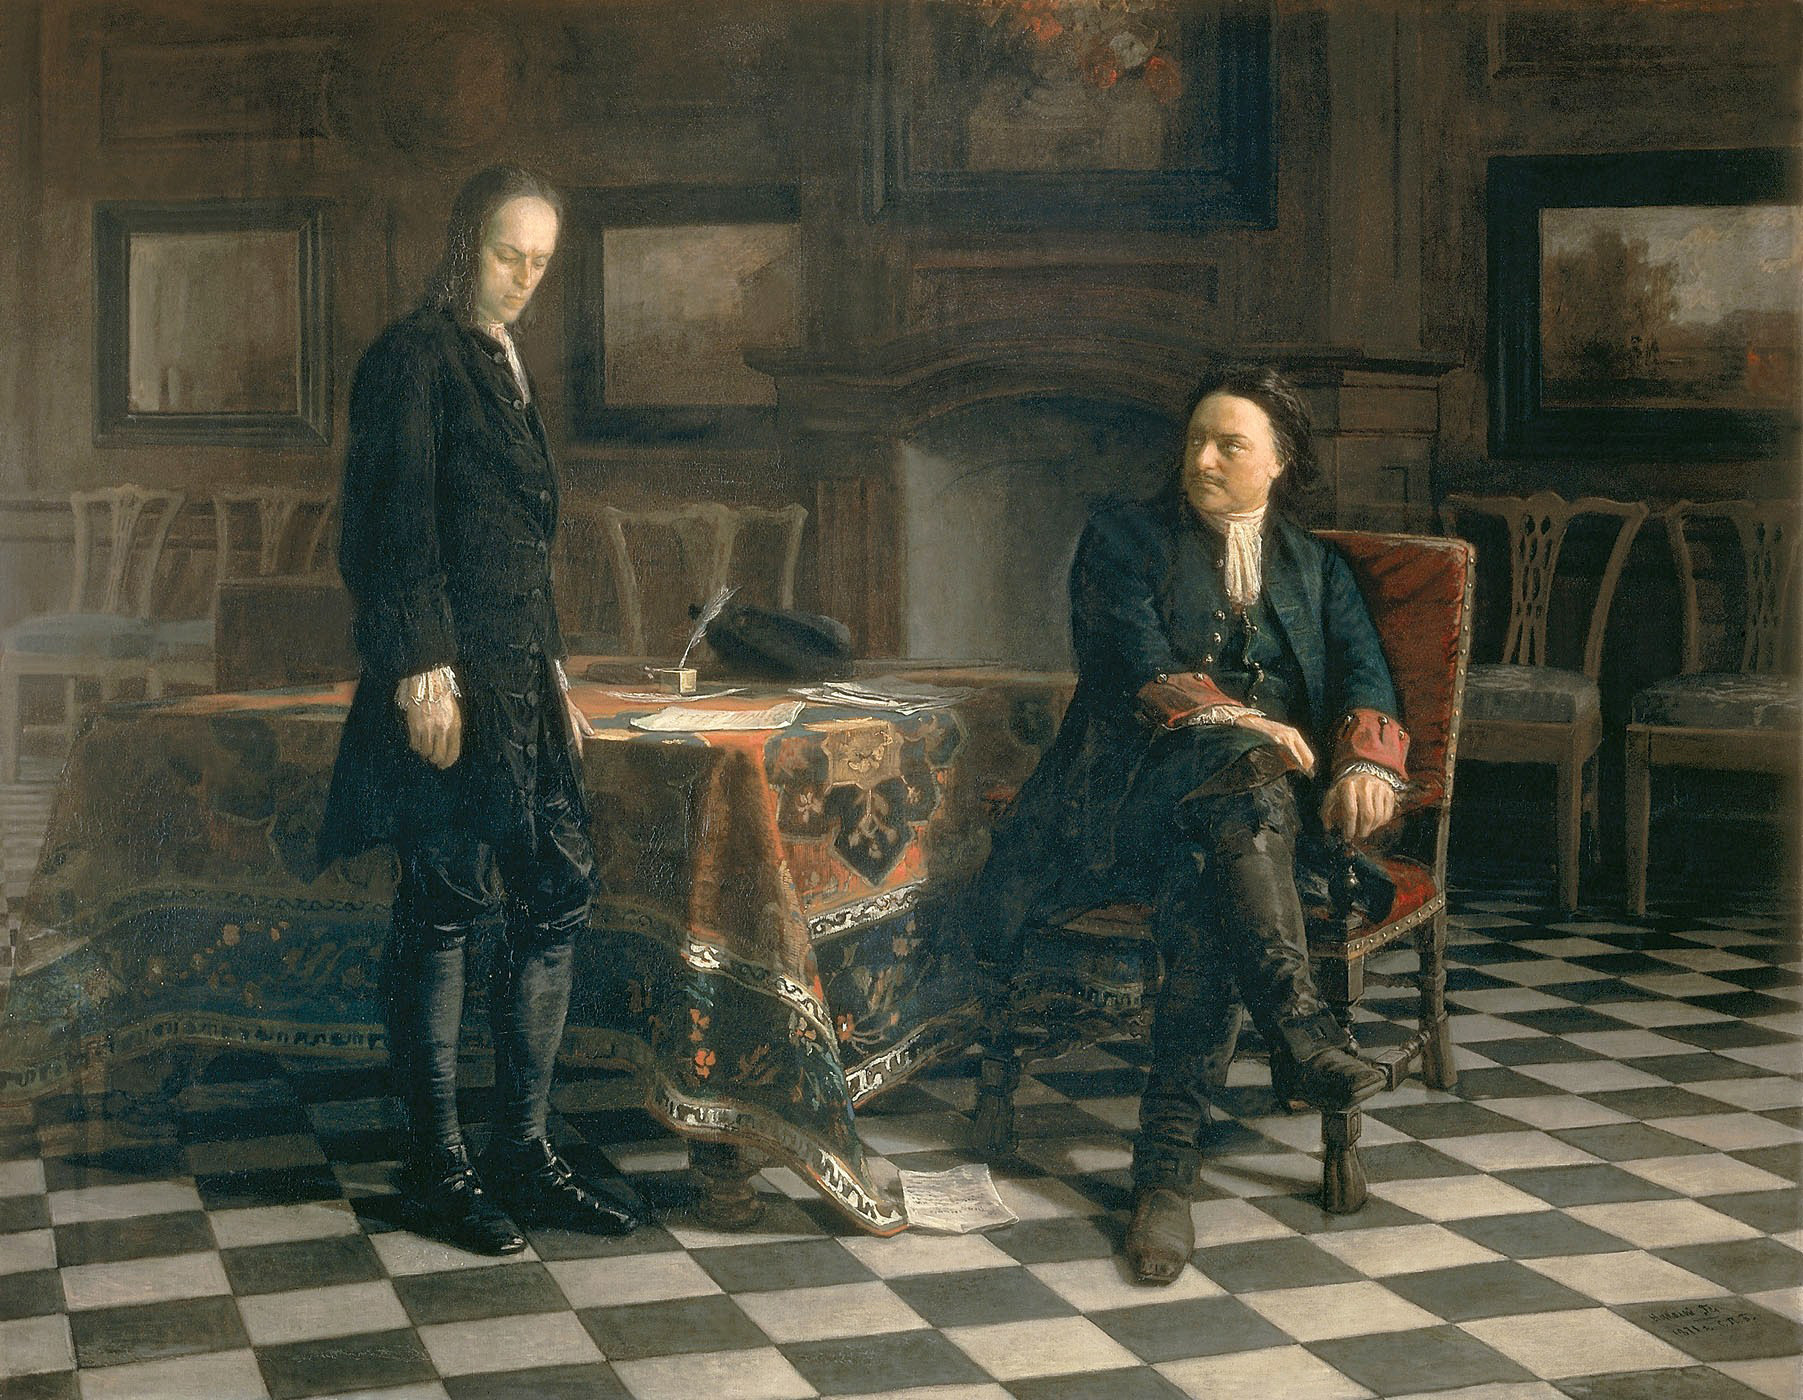 Pierre le Grand interrogeant le tsarévitch Alexis, 1871